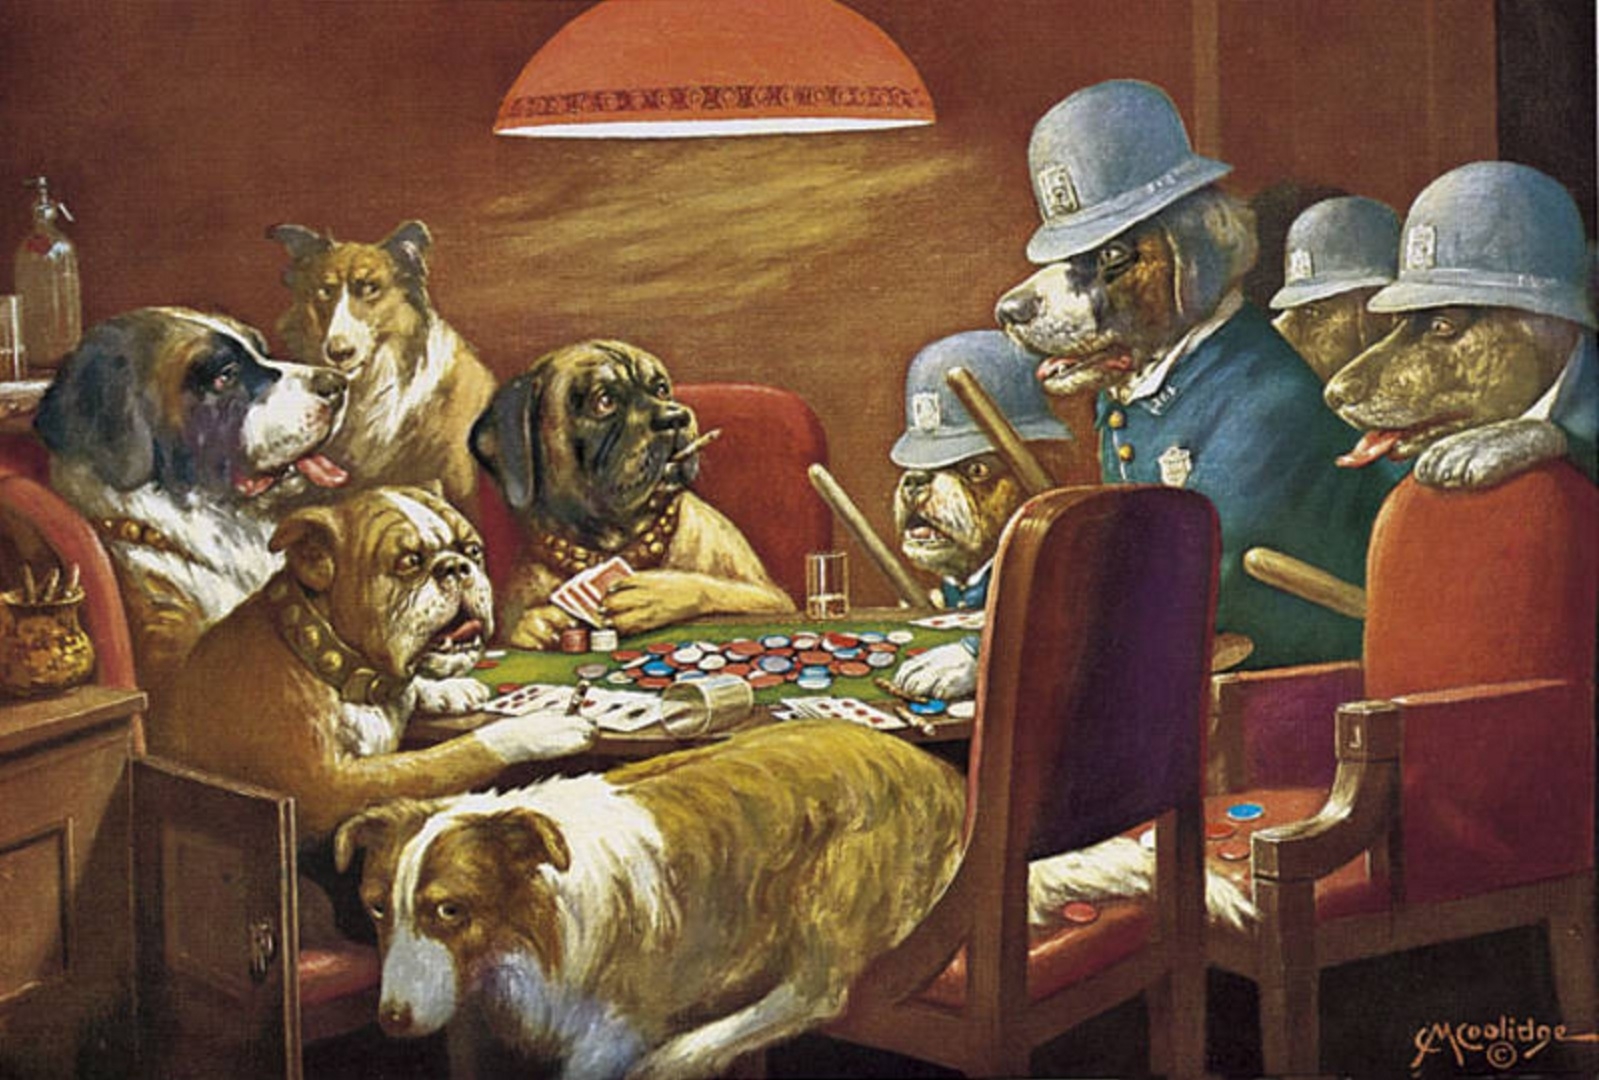 Poker & Pop Culture: Cassius M. Coolidge's Dogs Playing Poker 103